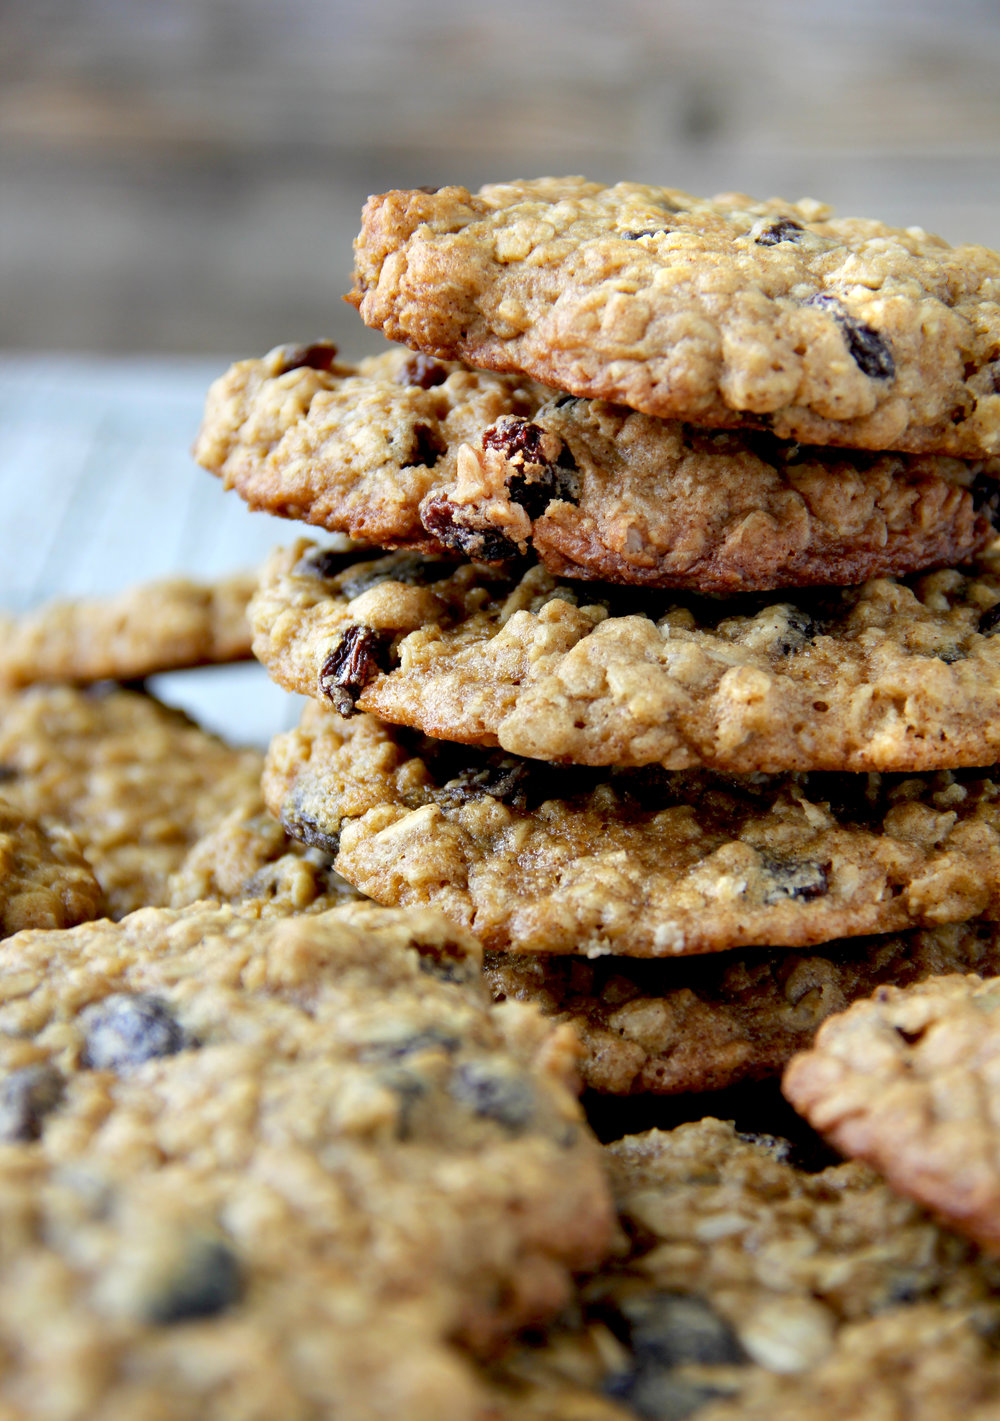 Oatmeal raisin 1.jpg